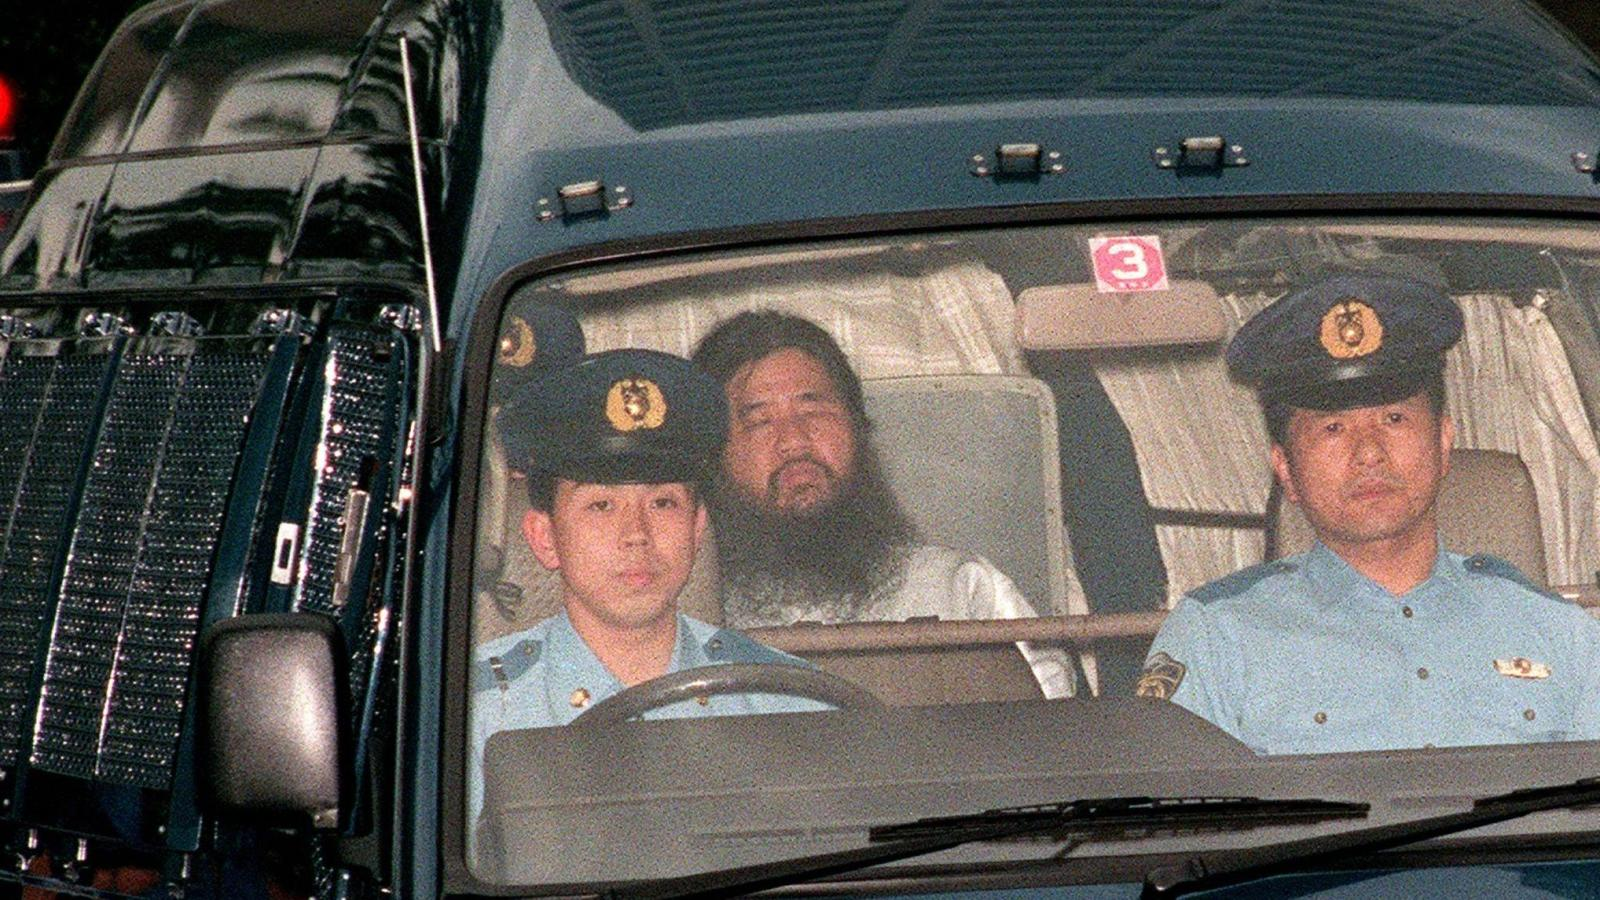 Japan executed Aum Shinrikyo cult members for Tokyo subway